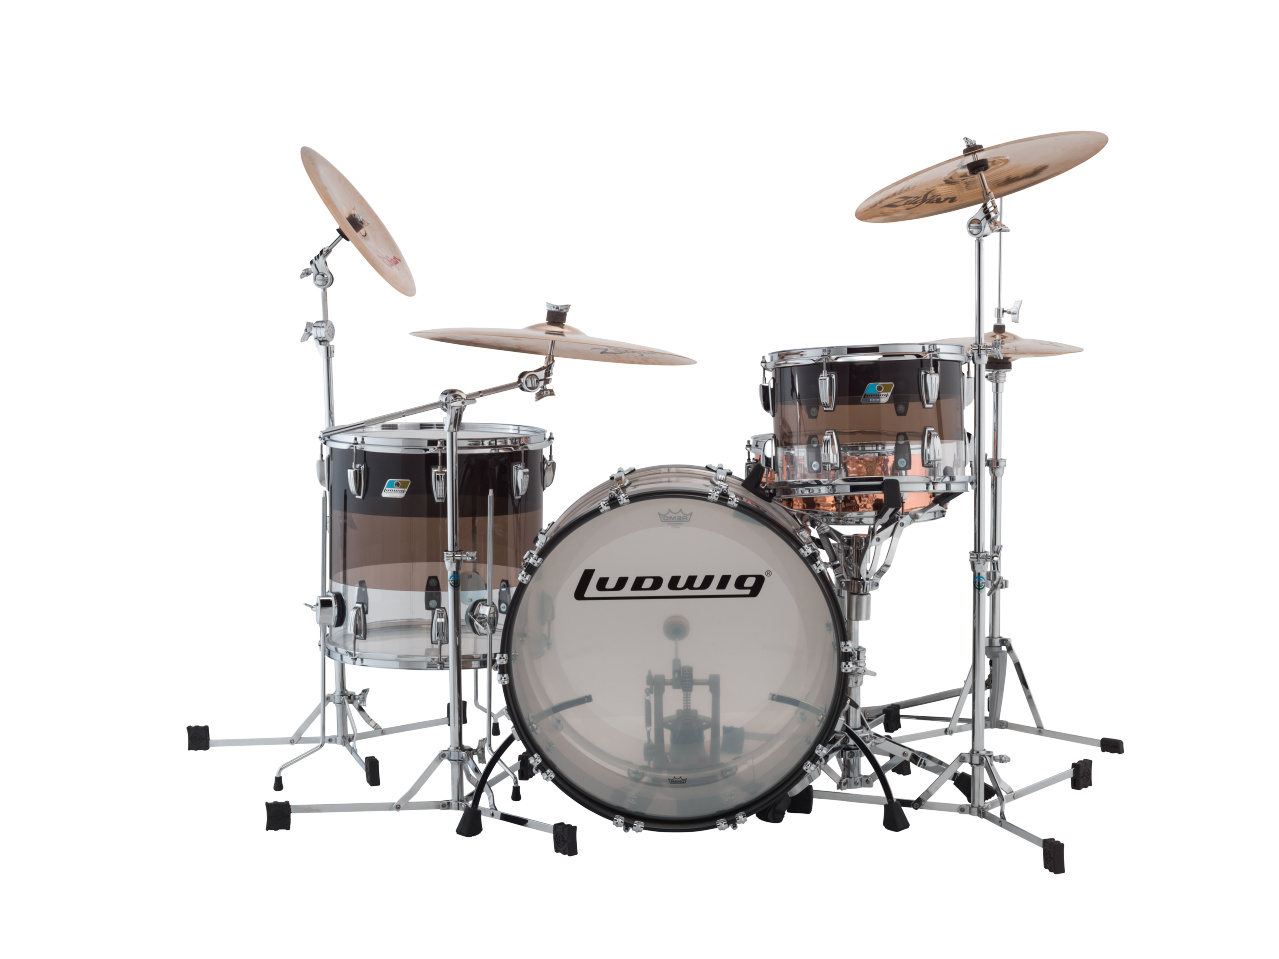 acoustic drum kits ludwig vistalite fab 22 in stock now. Black Bedroom Furniture Sets. Home Design Ideas